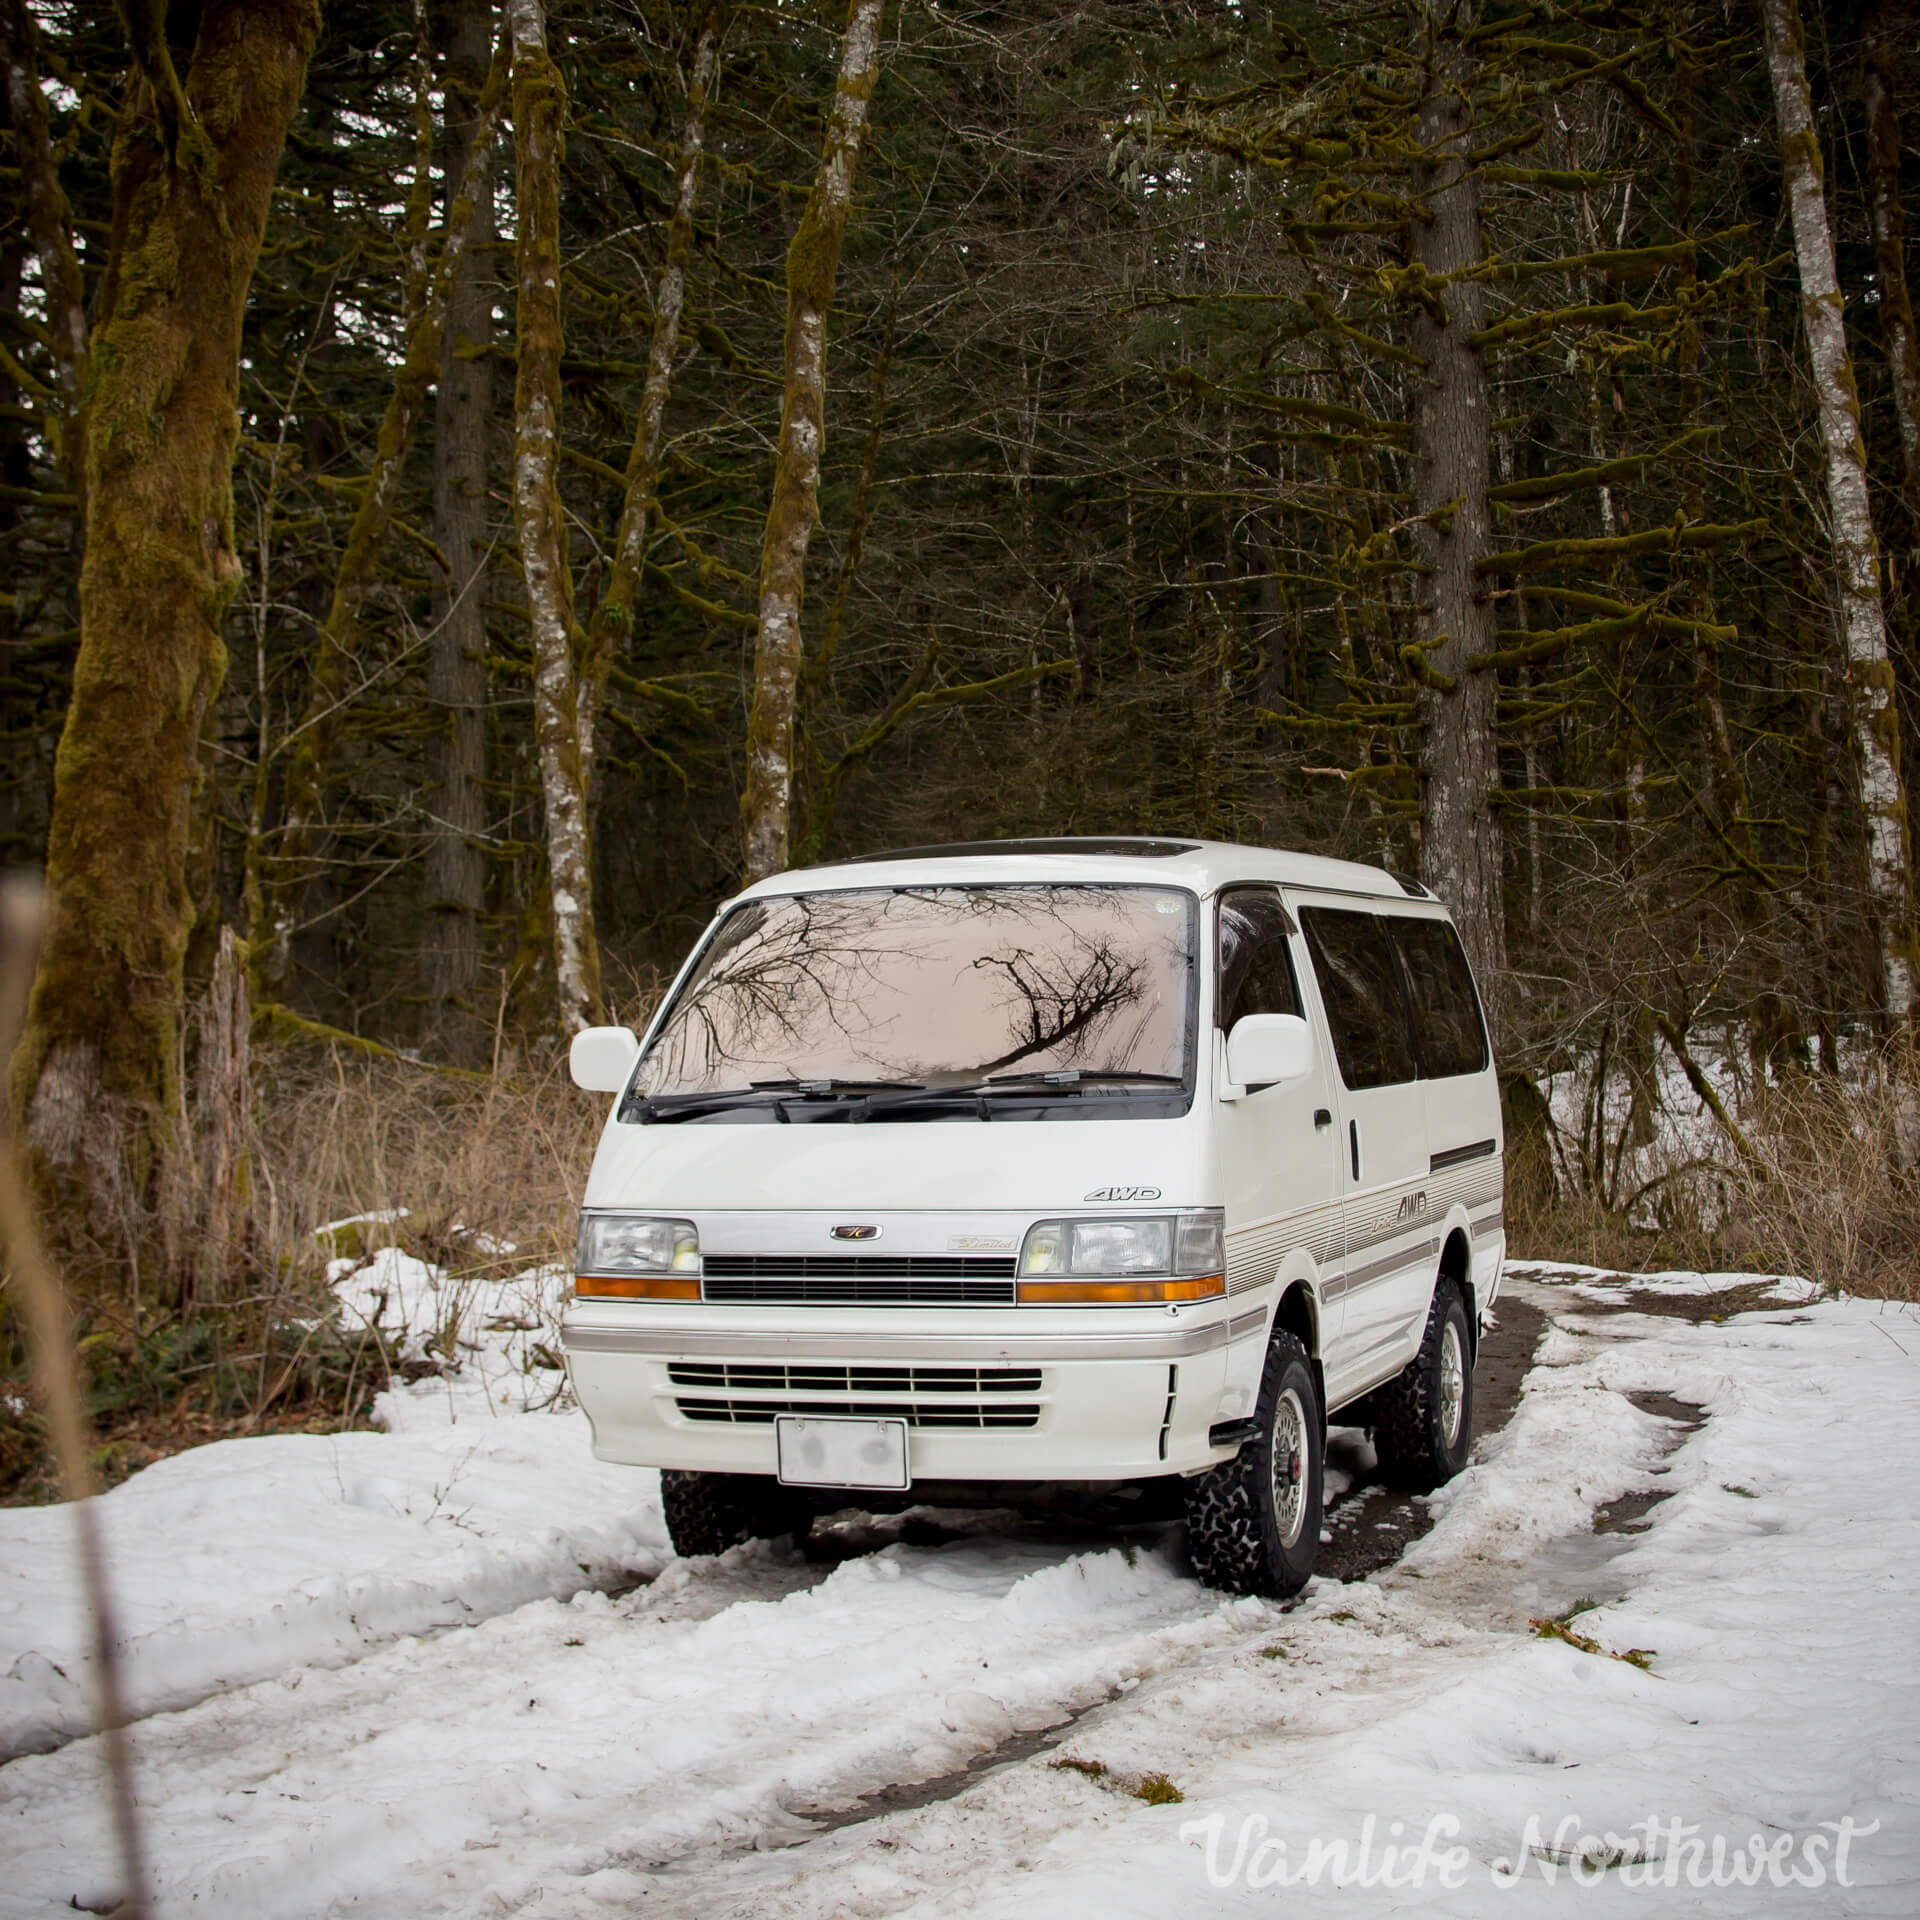 1992 TOYOTA HIACE SUPER CUSTOM LIMITED 4WD — Vanlife Northwest